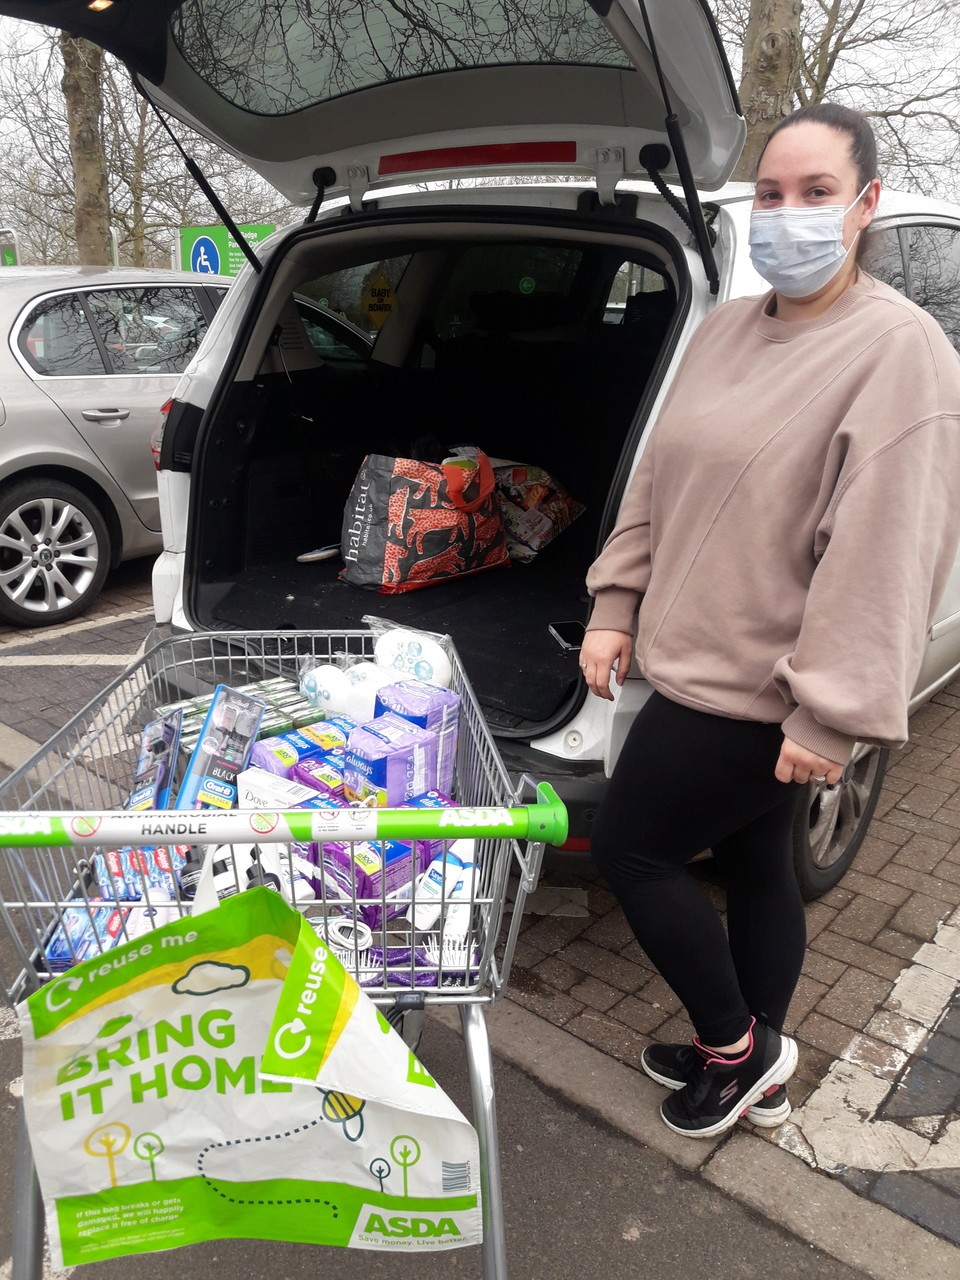 Donation to Cradle charity | Asda Kingshill